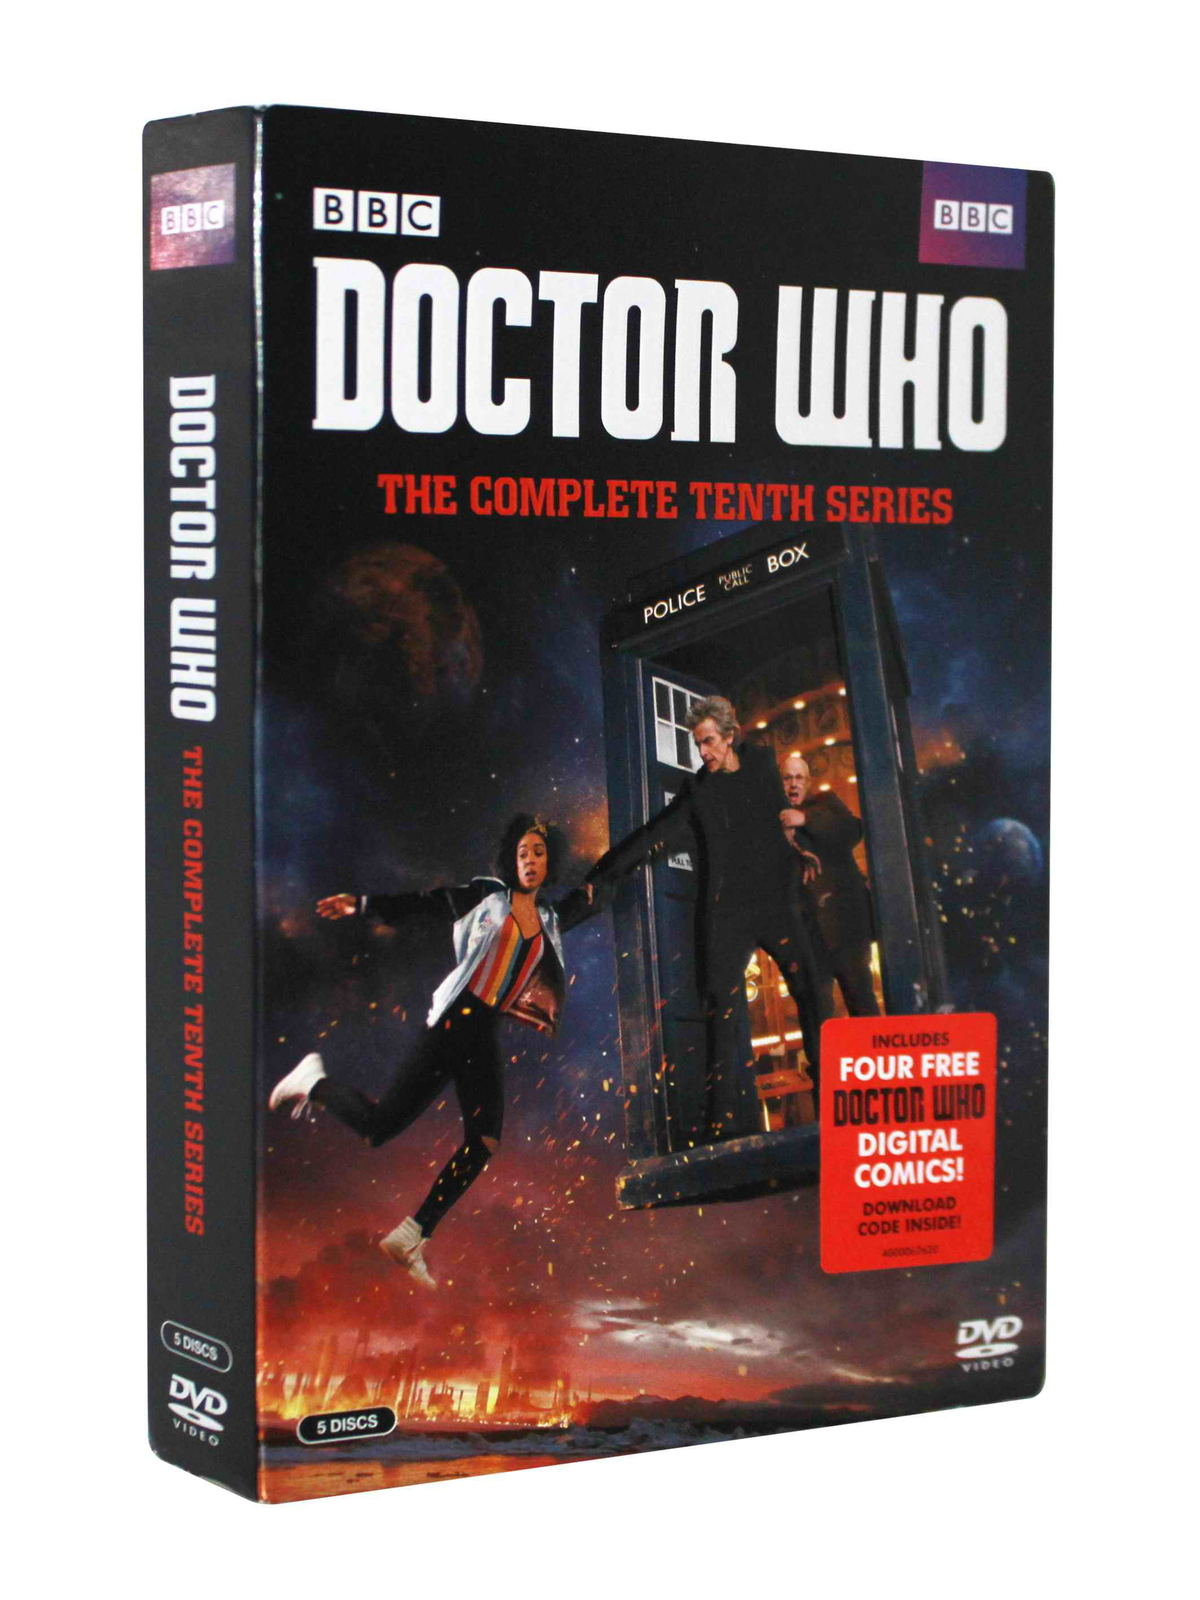 Doctor Who The Complete Series Season 10 DVD Box Set 5 Disc Free Shipping